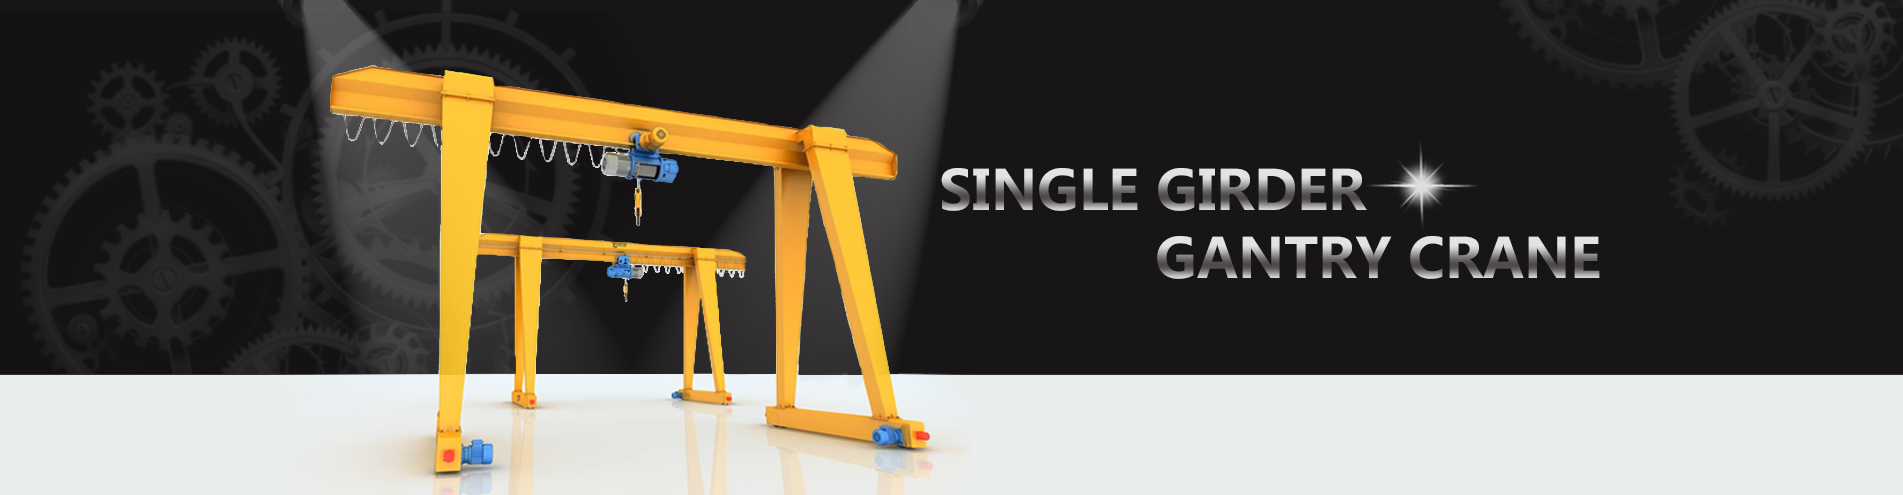 Single Girder Gantry Crane